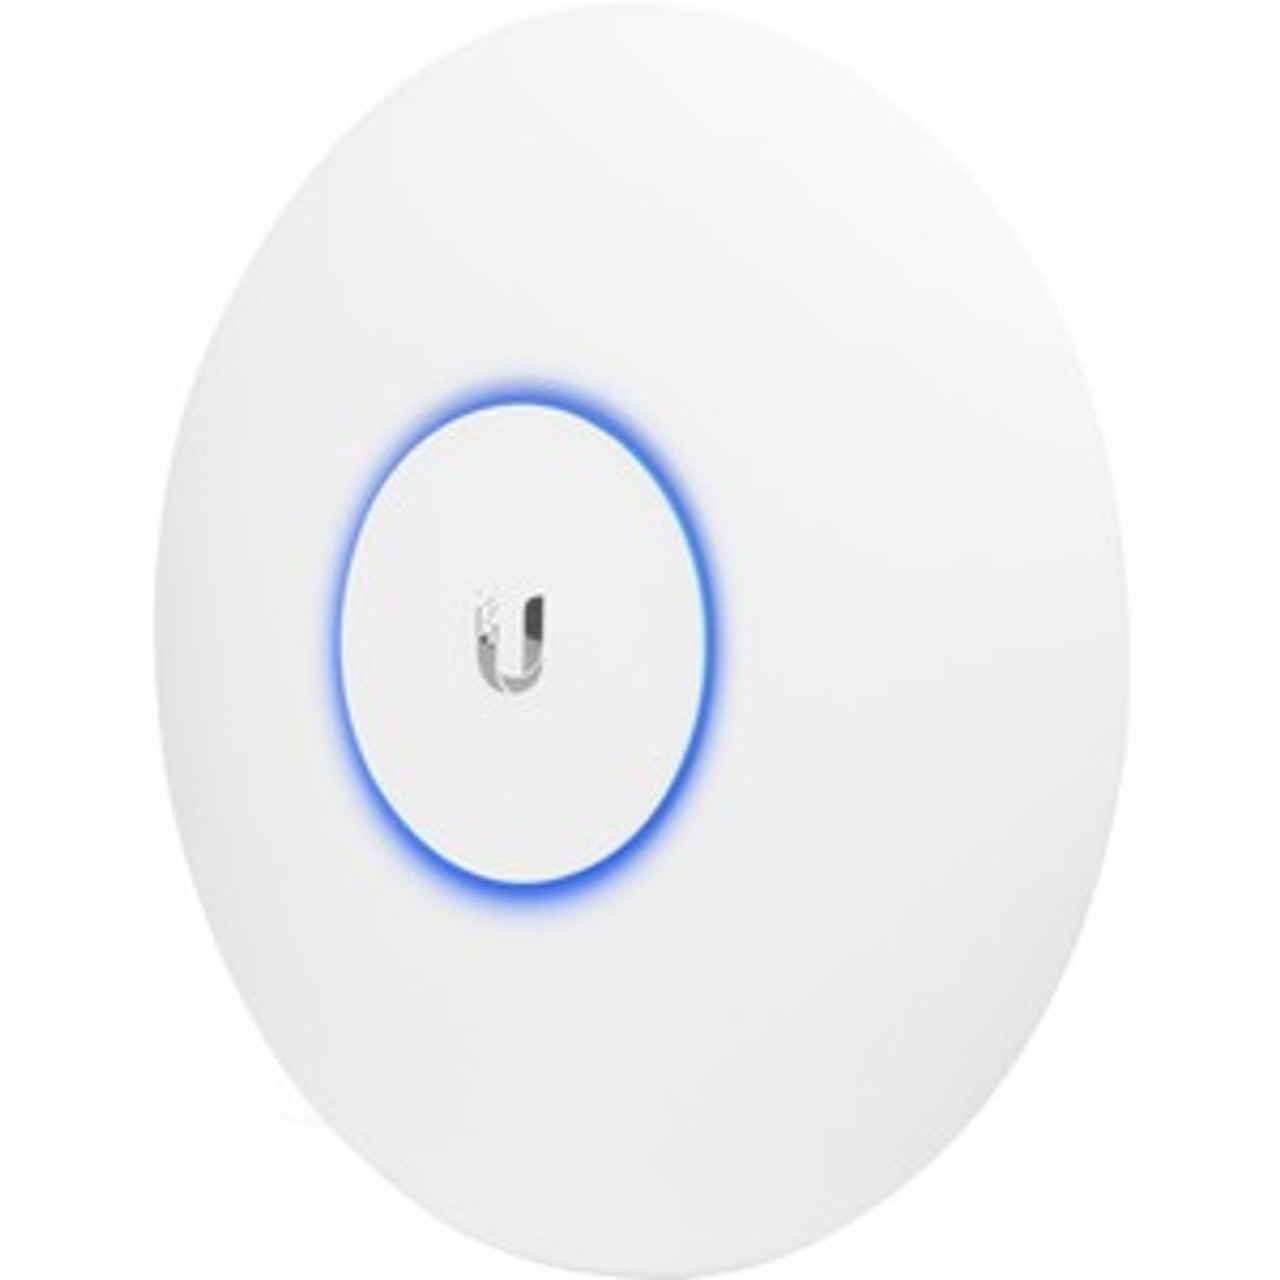 Ubiquiti UniFi UAP-AC-PRO IEEE 802.11ac 1.27 Gbit/s Wireless Access Point - 2.40 GHz, 5 GHz - MIMO Technology - 2 x Network (RJ-45) - Gigabit Ethernet - Wall Mountable, Ceiling Mountable - 1 Pack